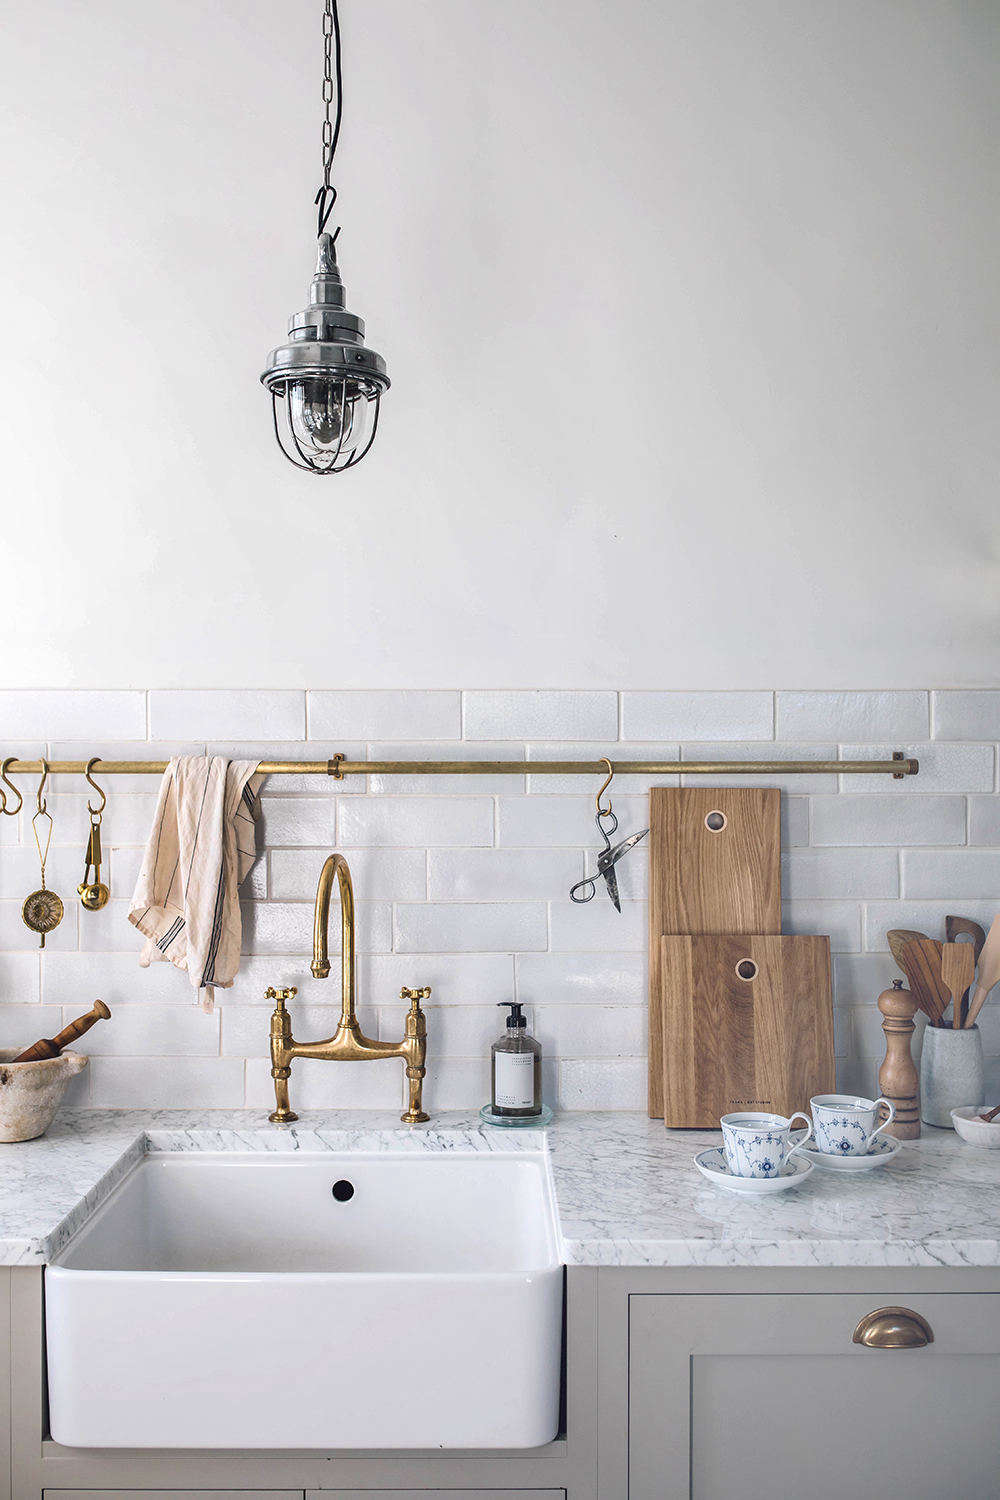 A Bigger And Brighter Kitchen An Ikea Makeover By Our Food Stories